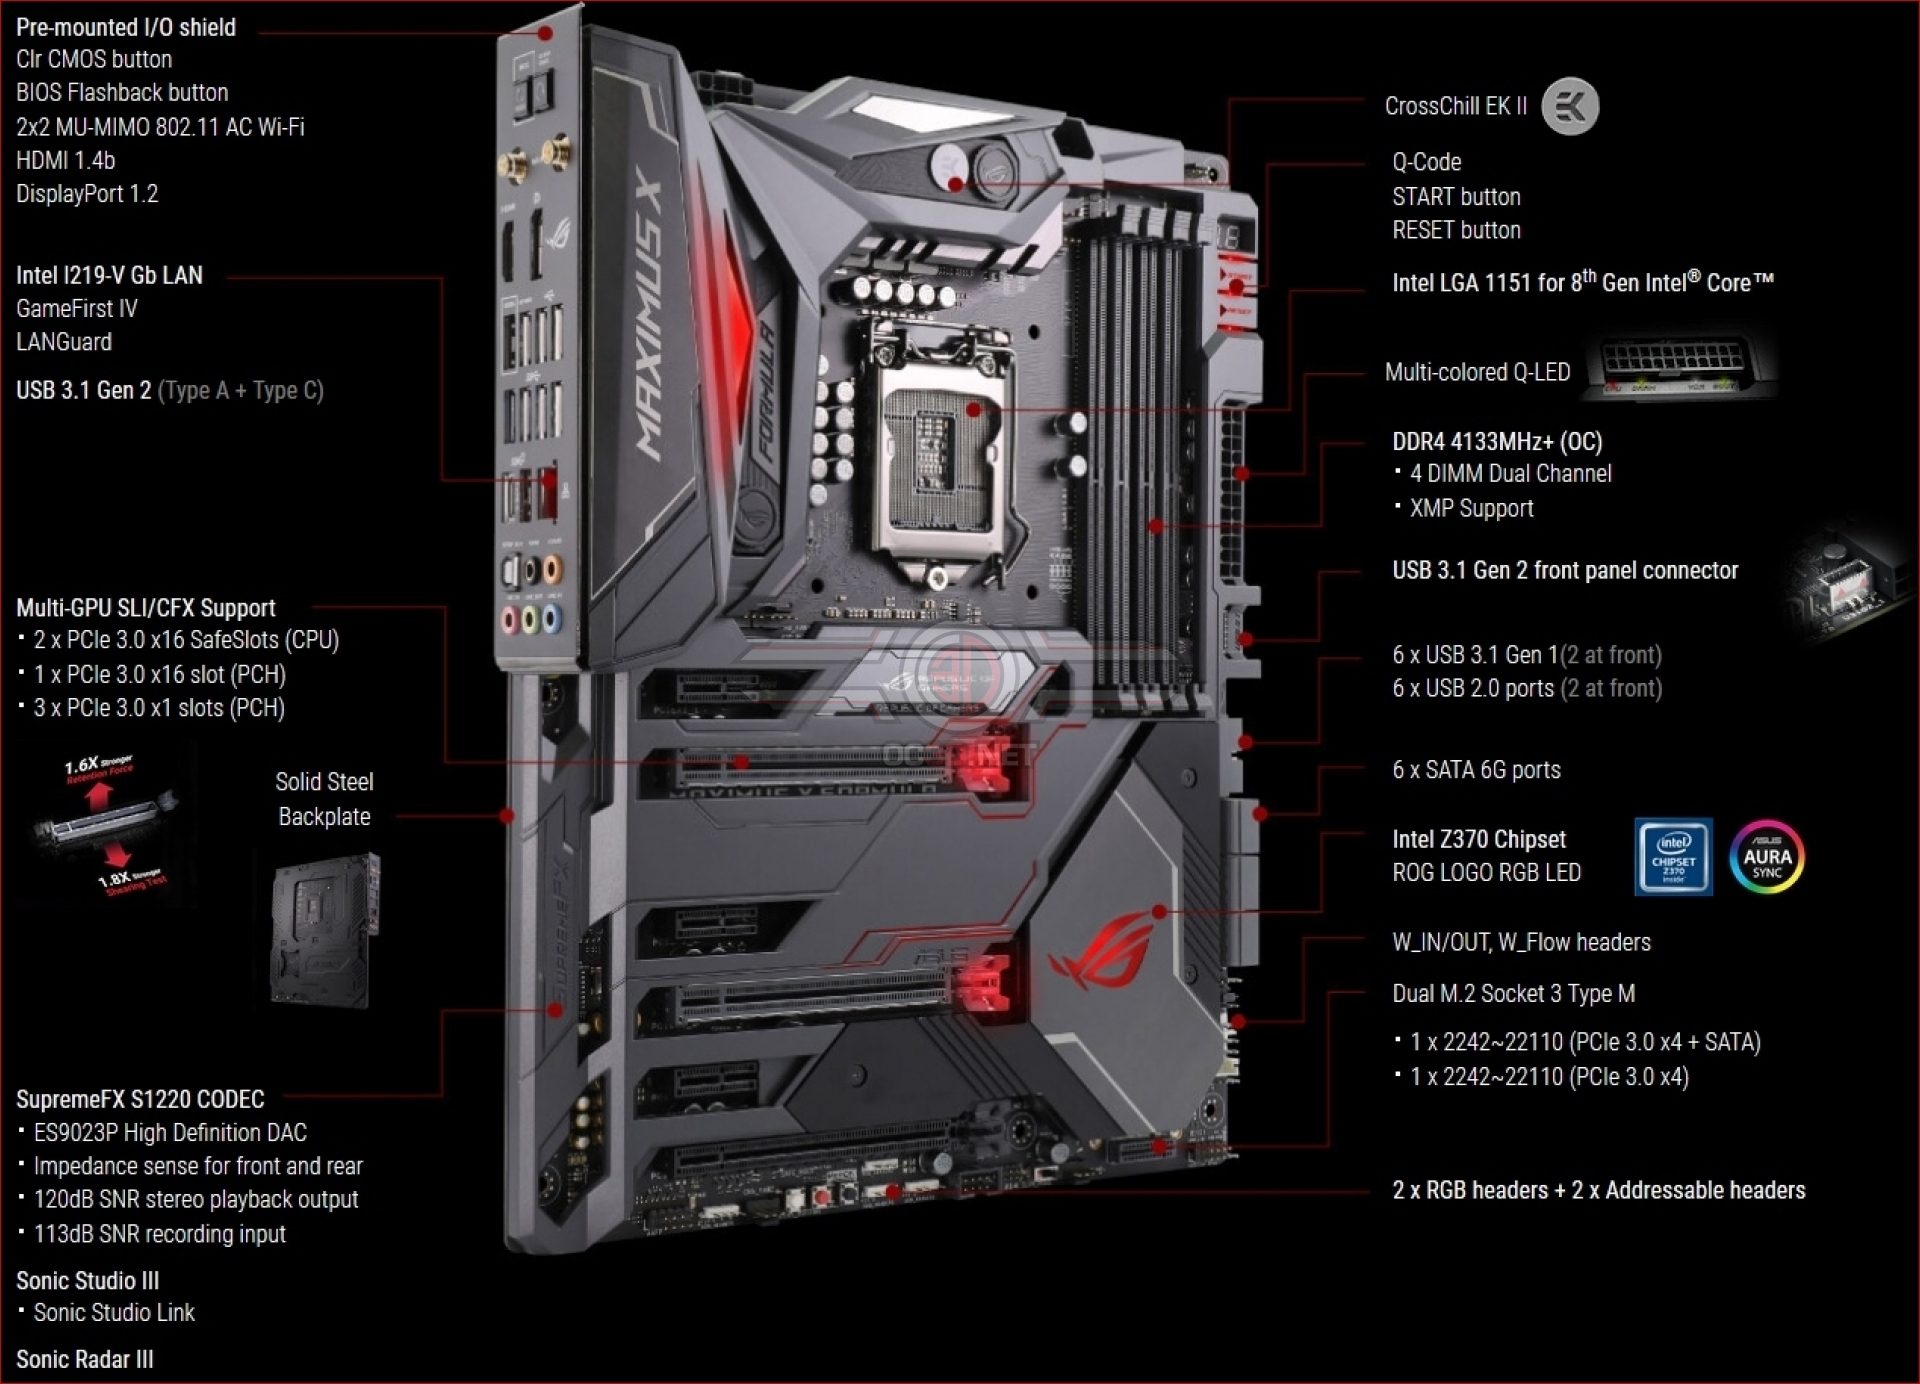 asus rog z370 maximus x formula review introduction and technical specifications cpu. Black Bedroom Furniture Sets. Home Design Ideas